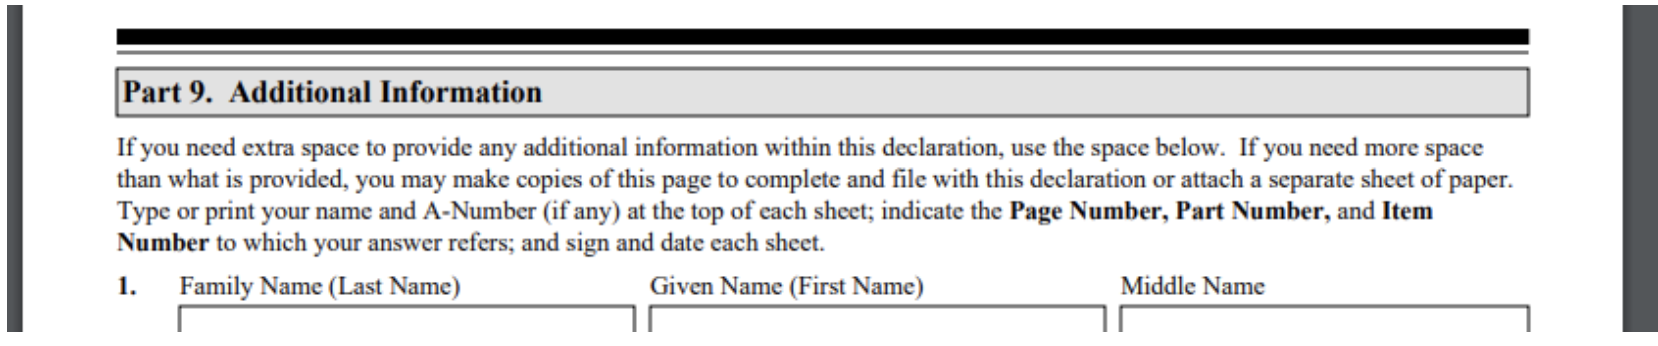 Part 9 additional information for the I-944 form